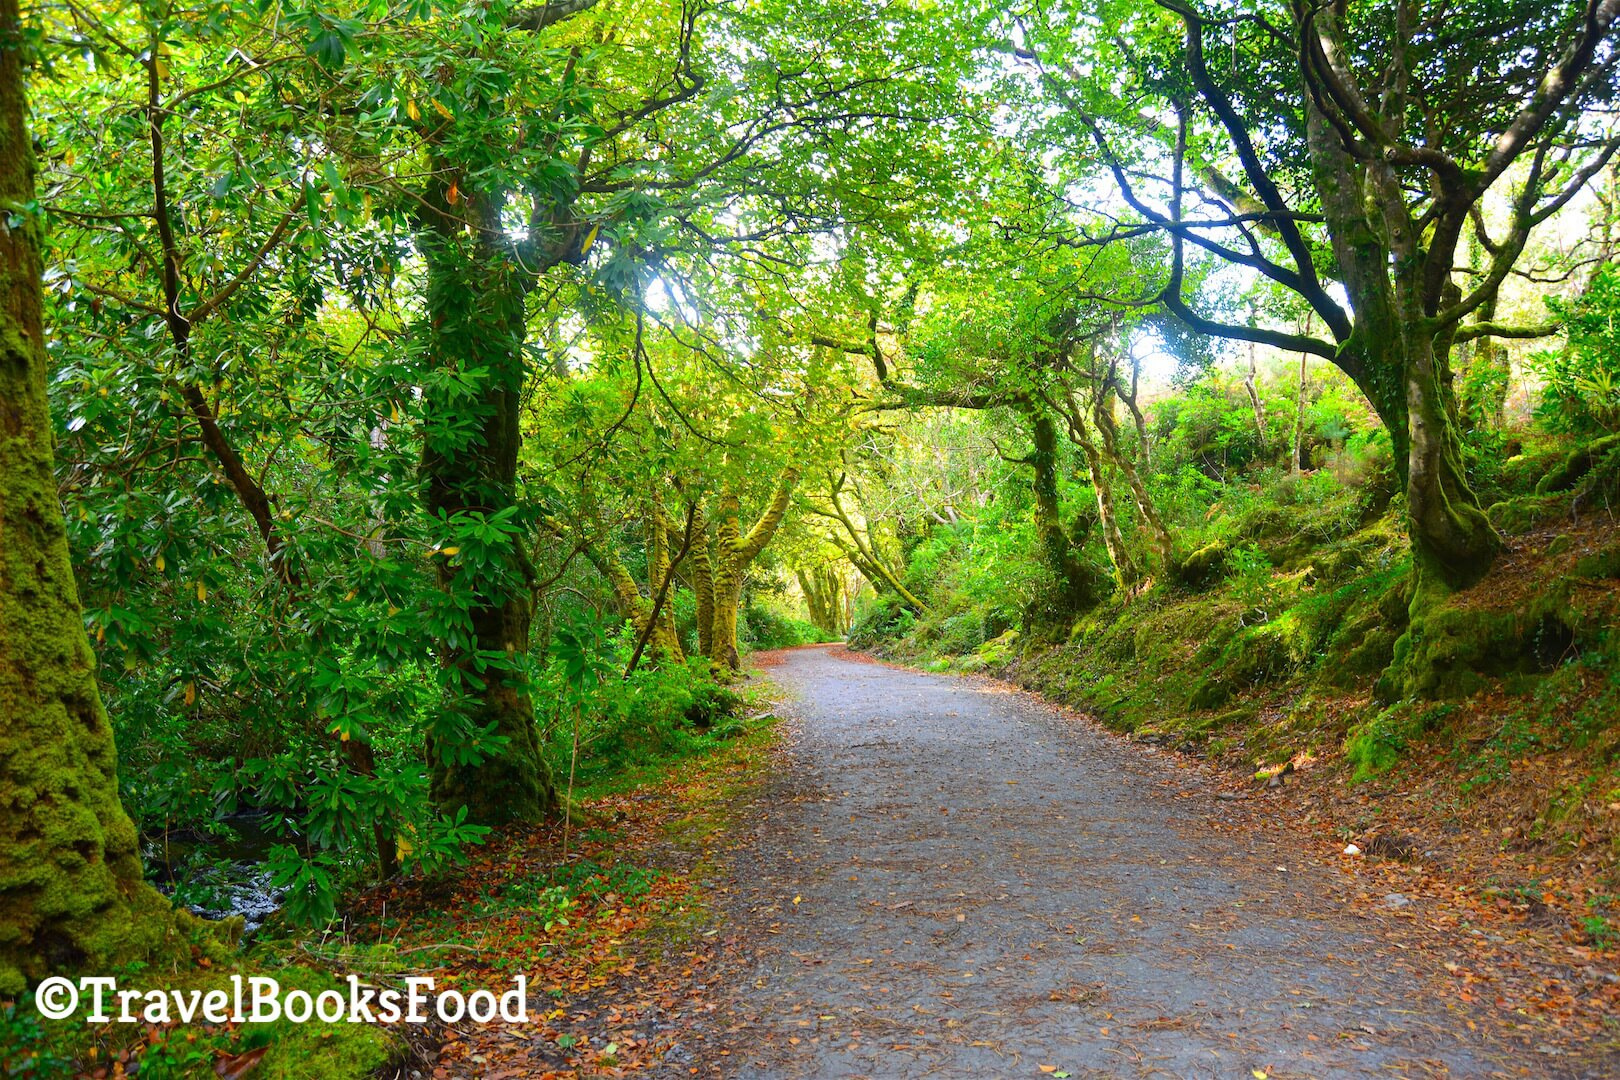 A tropical paradise in Kells, Ireland. Lots of trees surrounding an isolated path